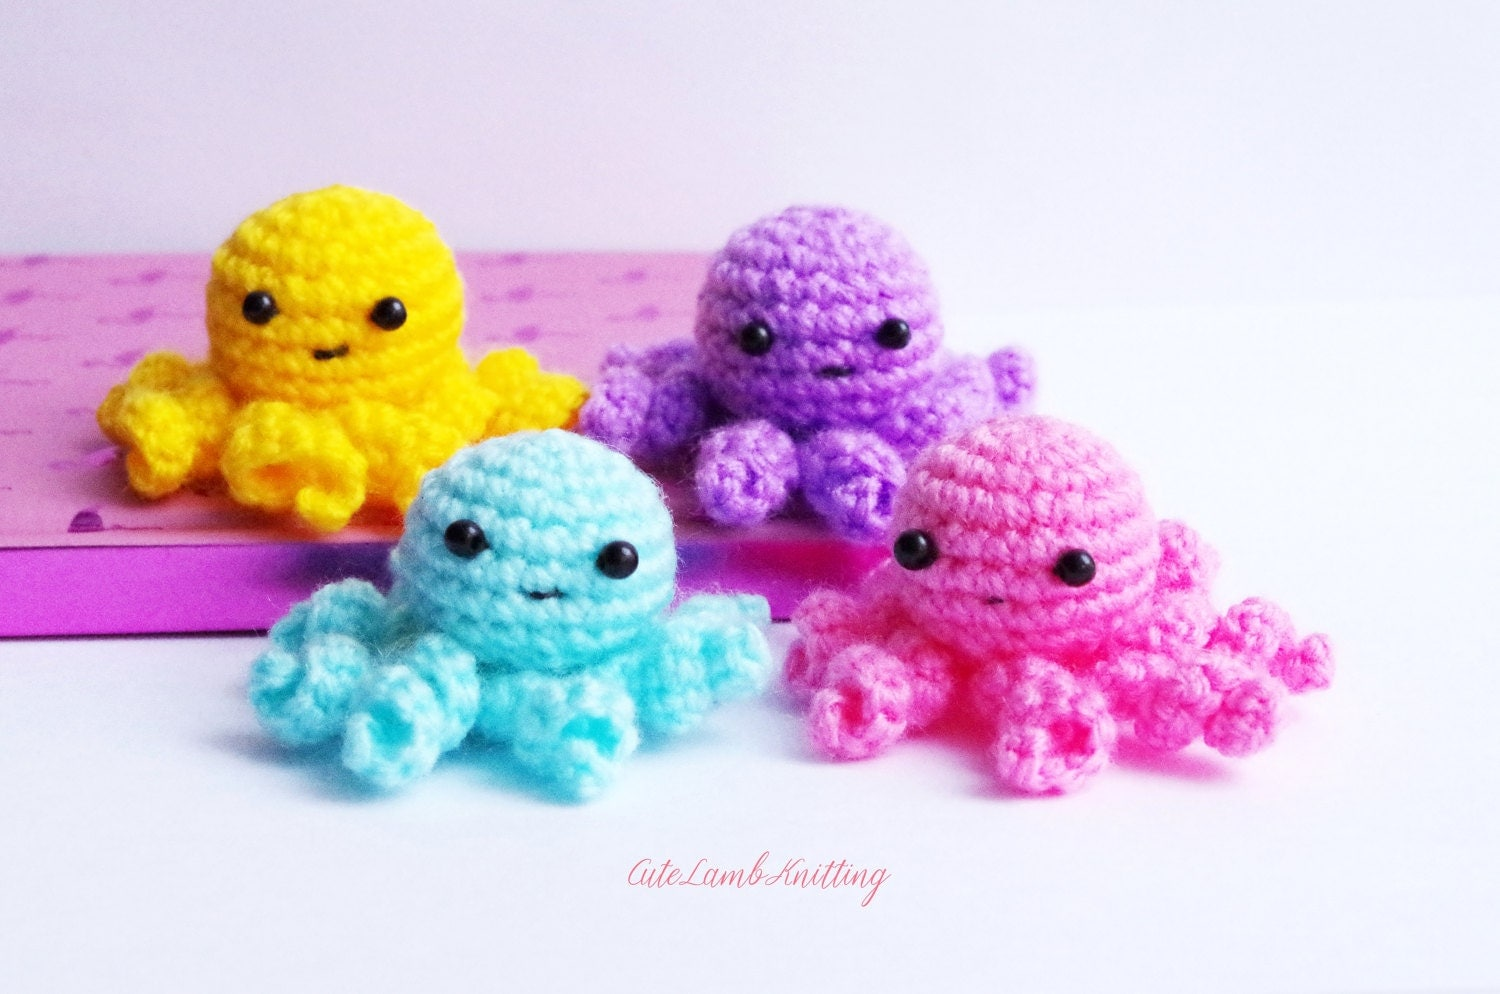 Mini Amigurumi Octopus : Crochet octopus mini amigurumi octopus crochet toy crochet